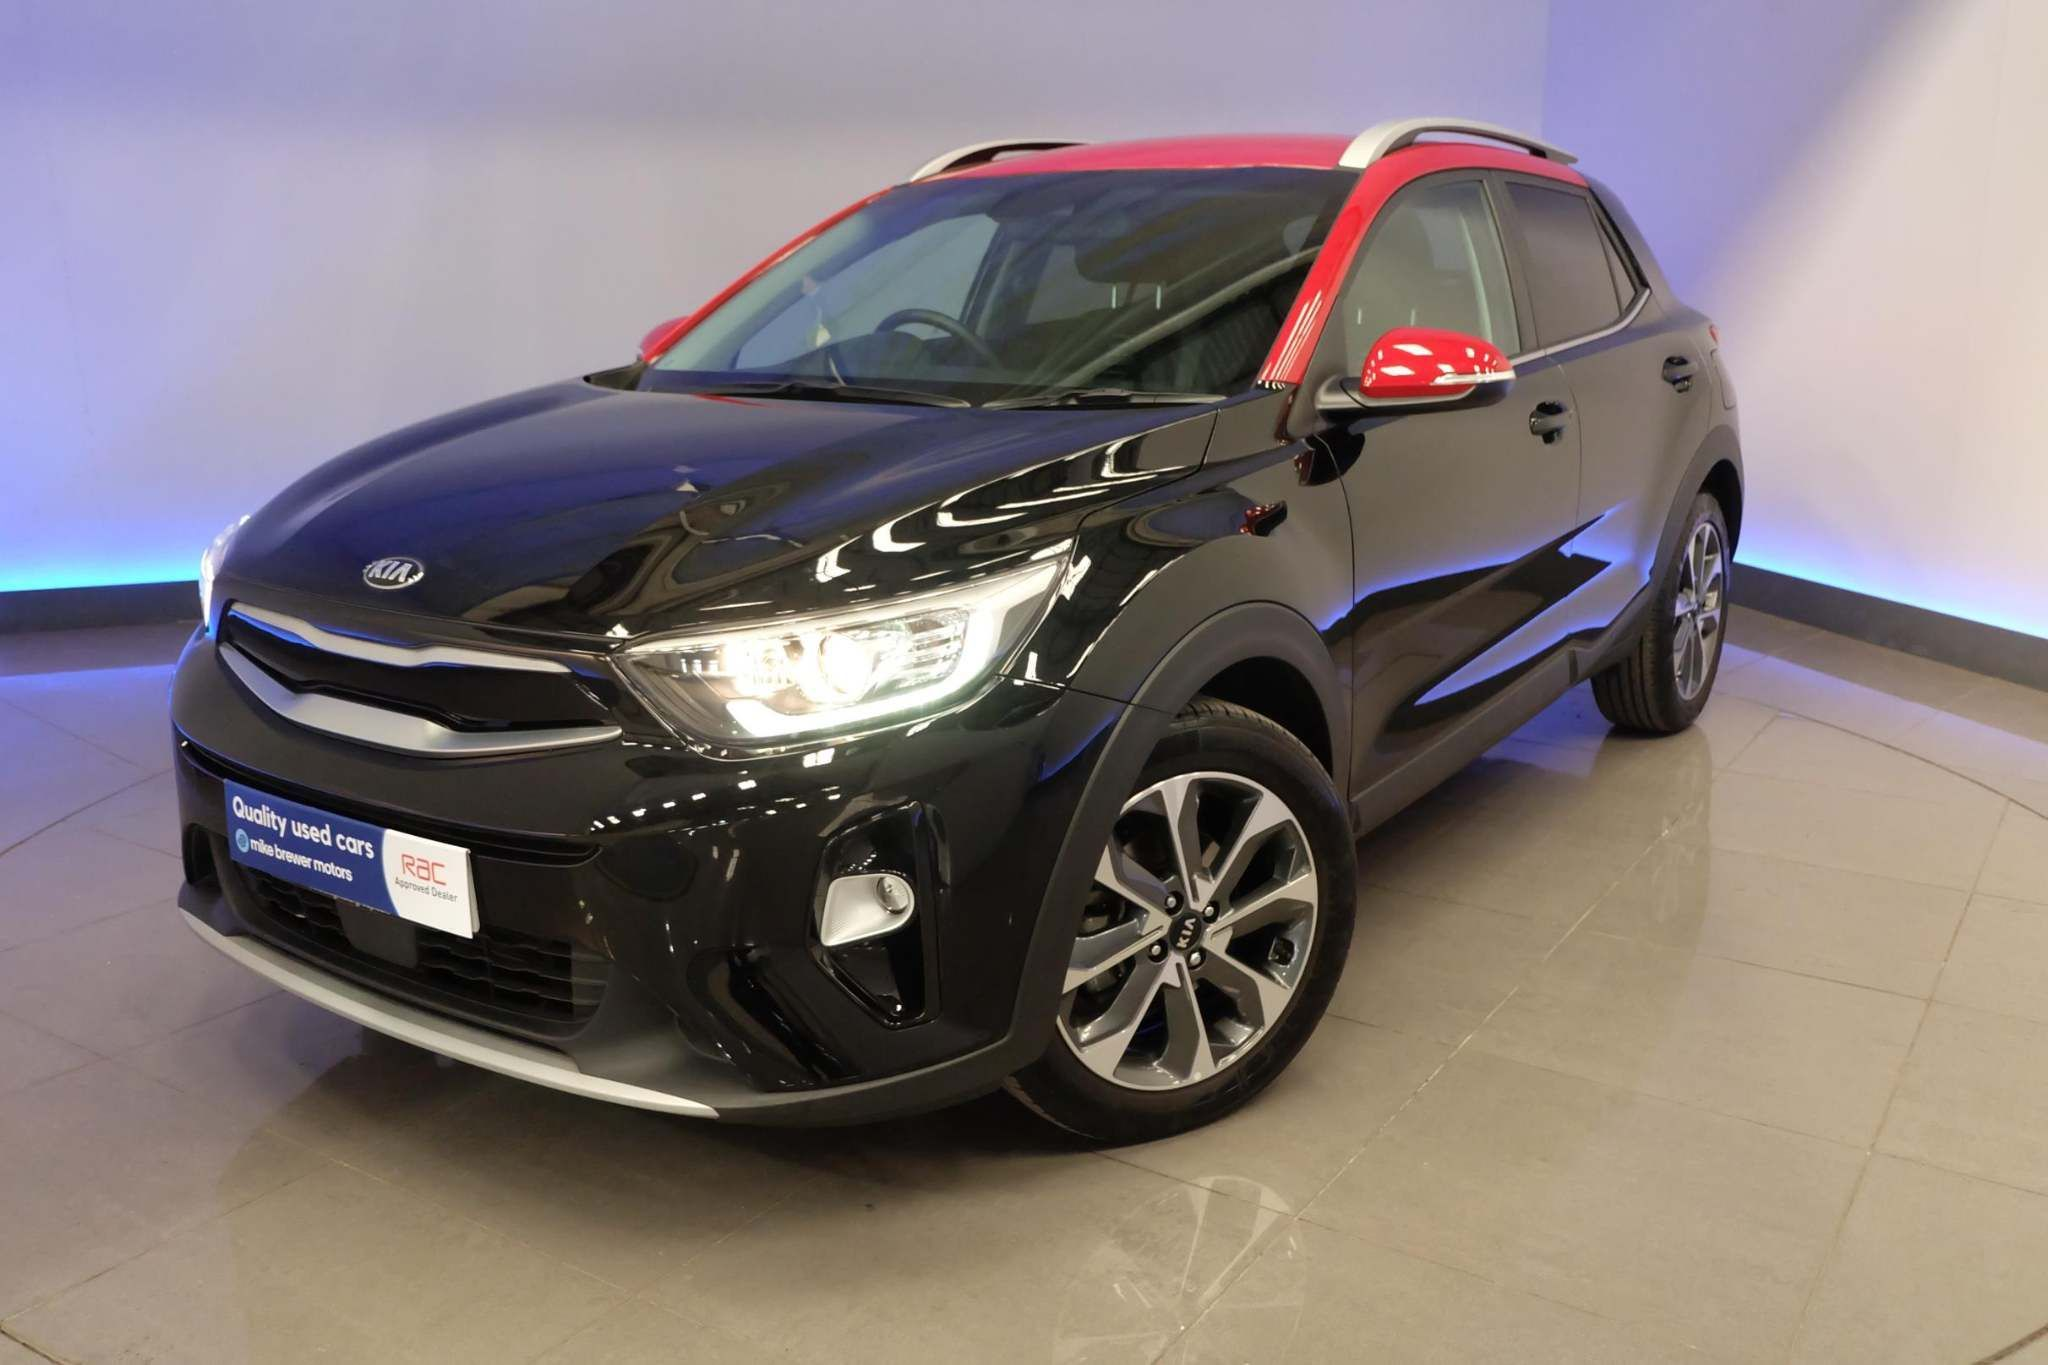 Used Kia Stonic 1.0 T-Gdi First Edition (s/s) 5dr